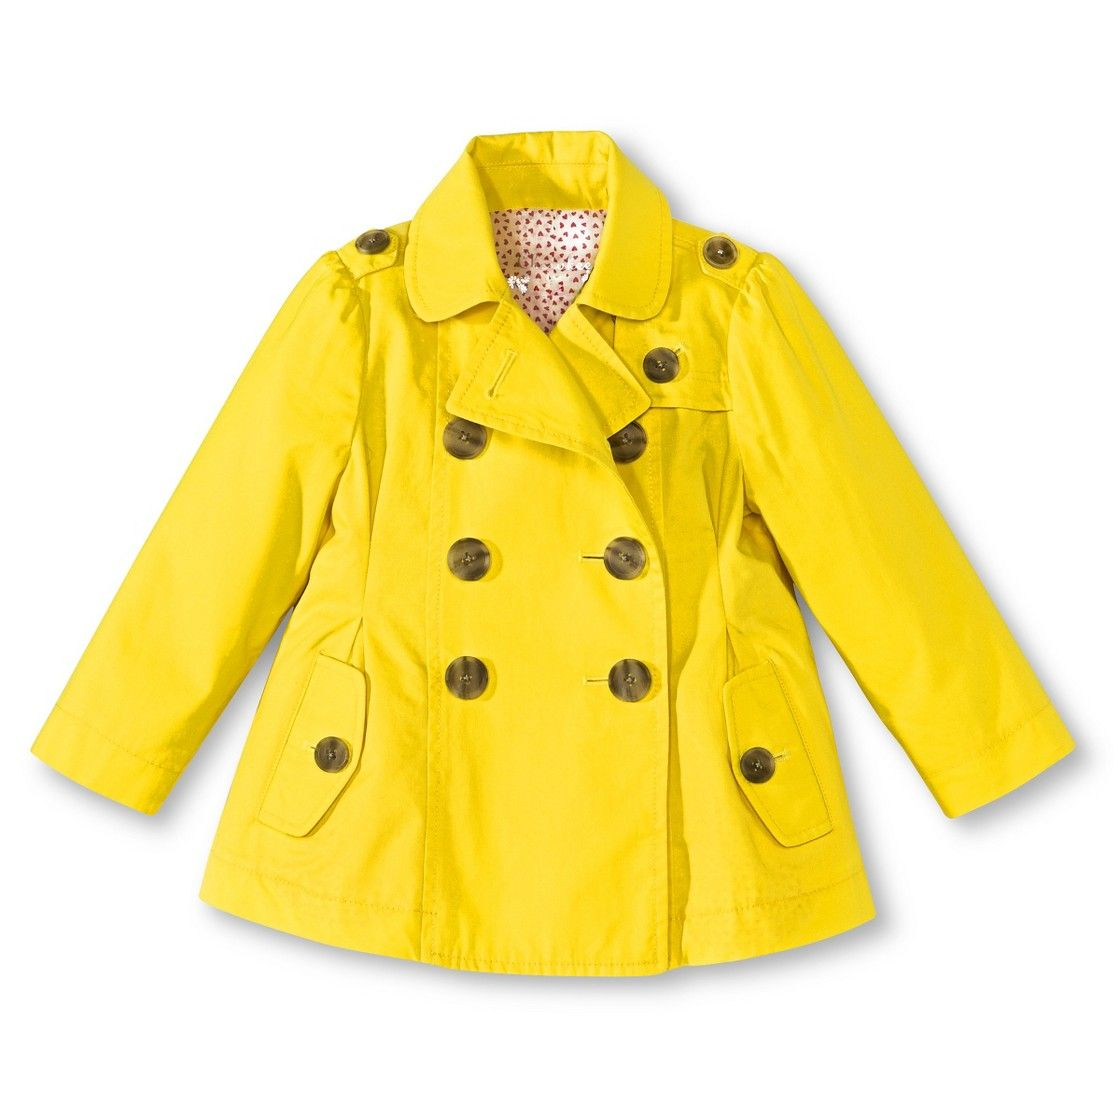 Perfect Spring Rain Jacket From Target Infant Toddler